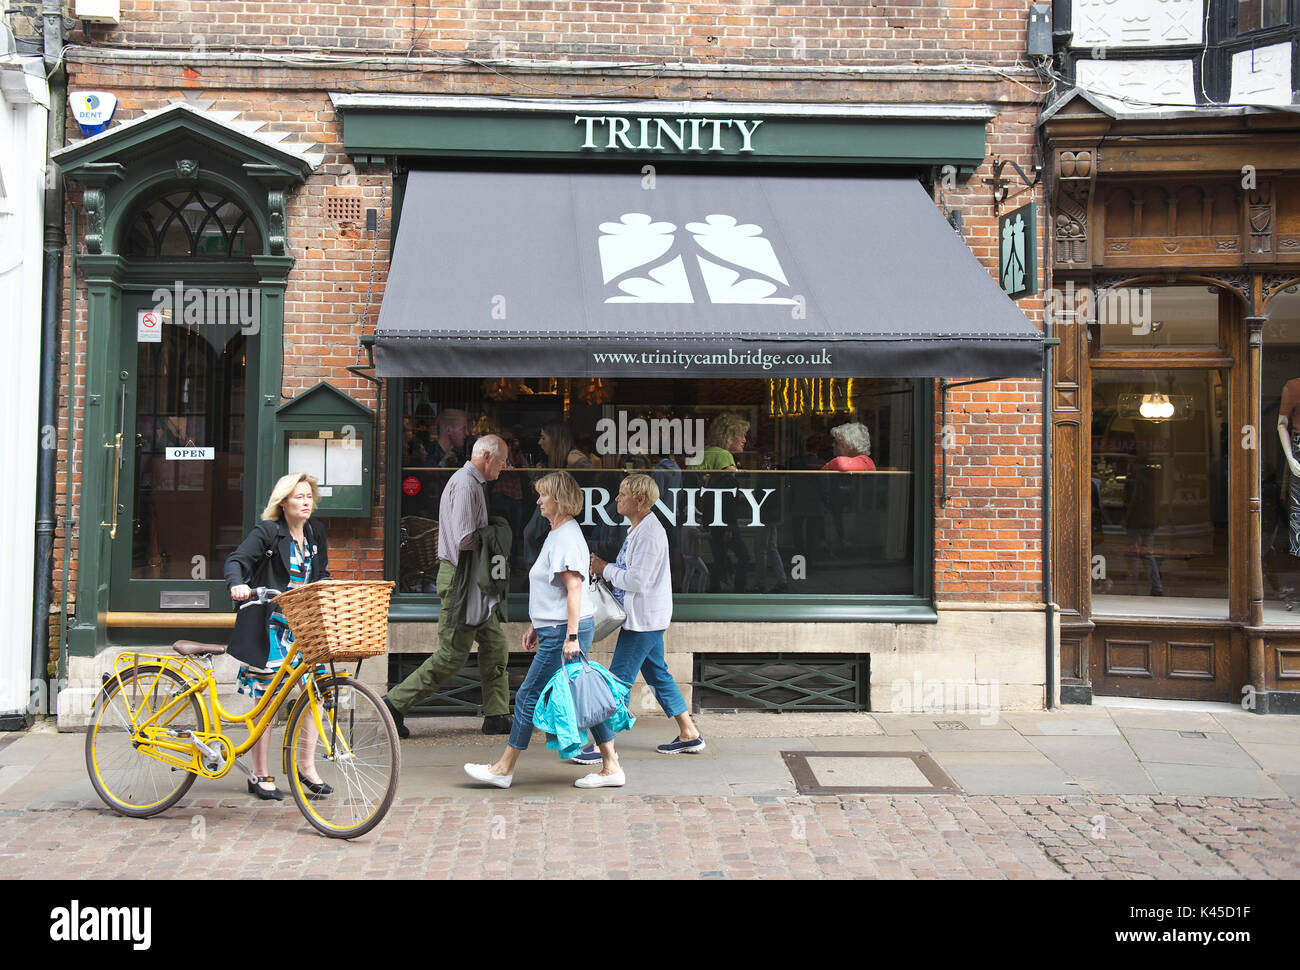 Historical buildings in the fine city of Cambridge, England. Trinity restaurant in the town centre, linked to the colleges as people walk past - Stock Image